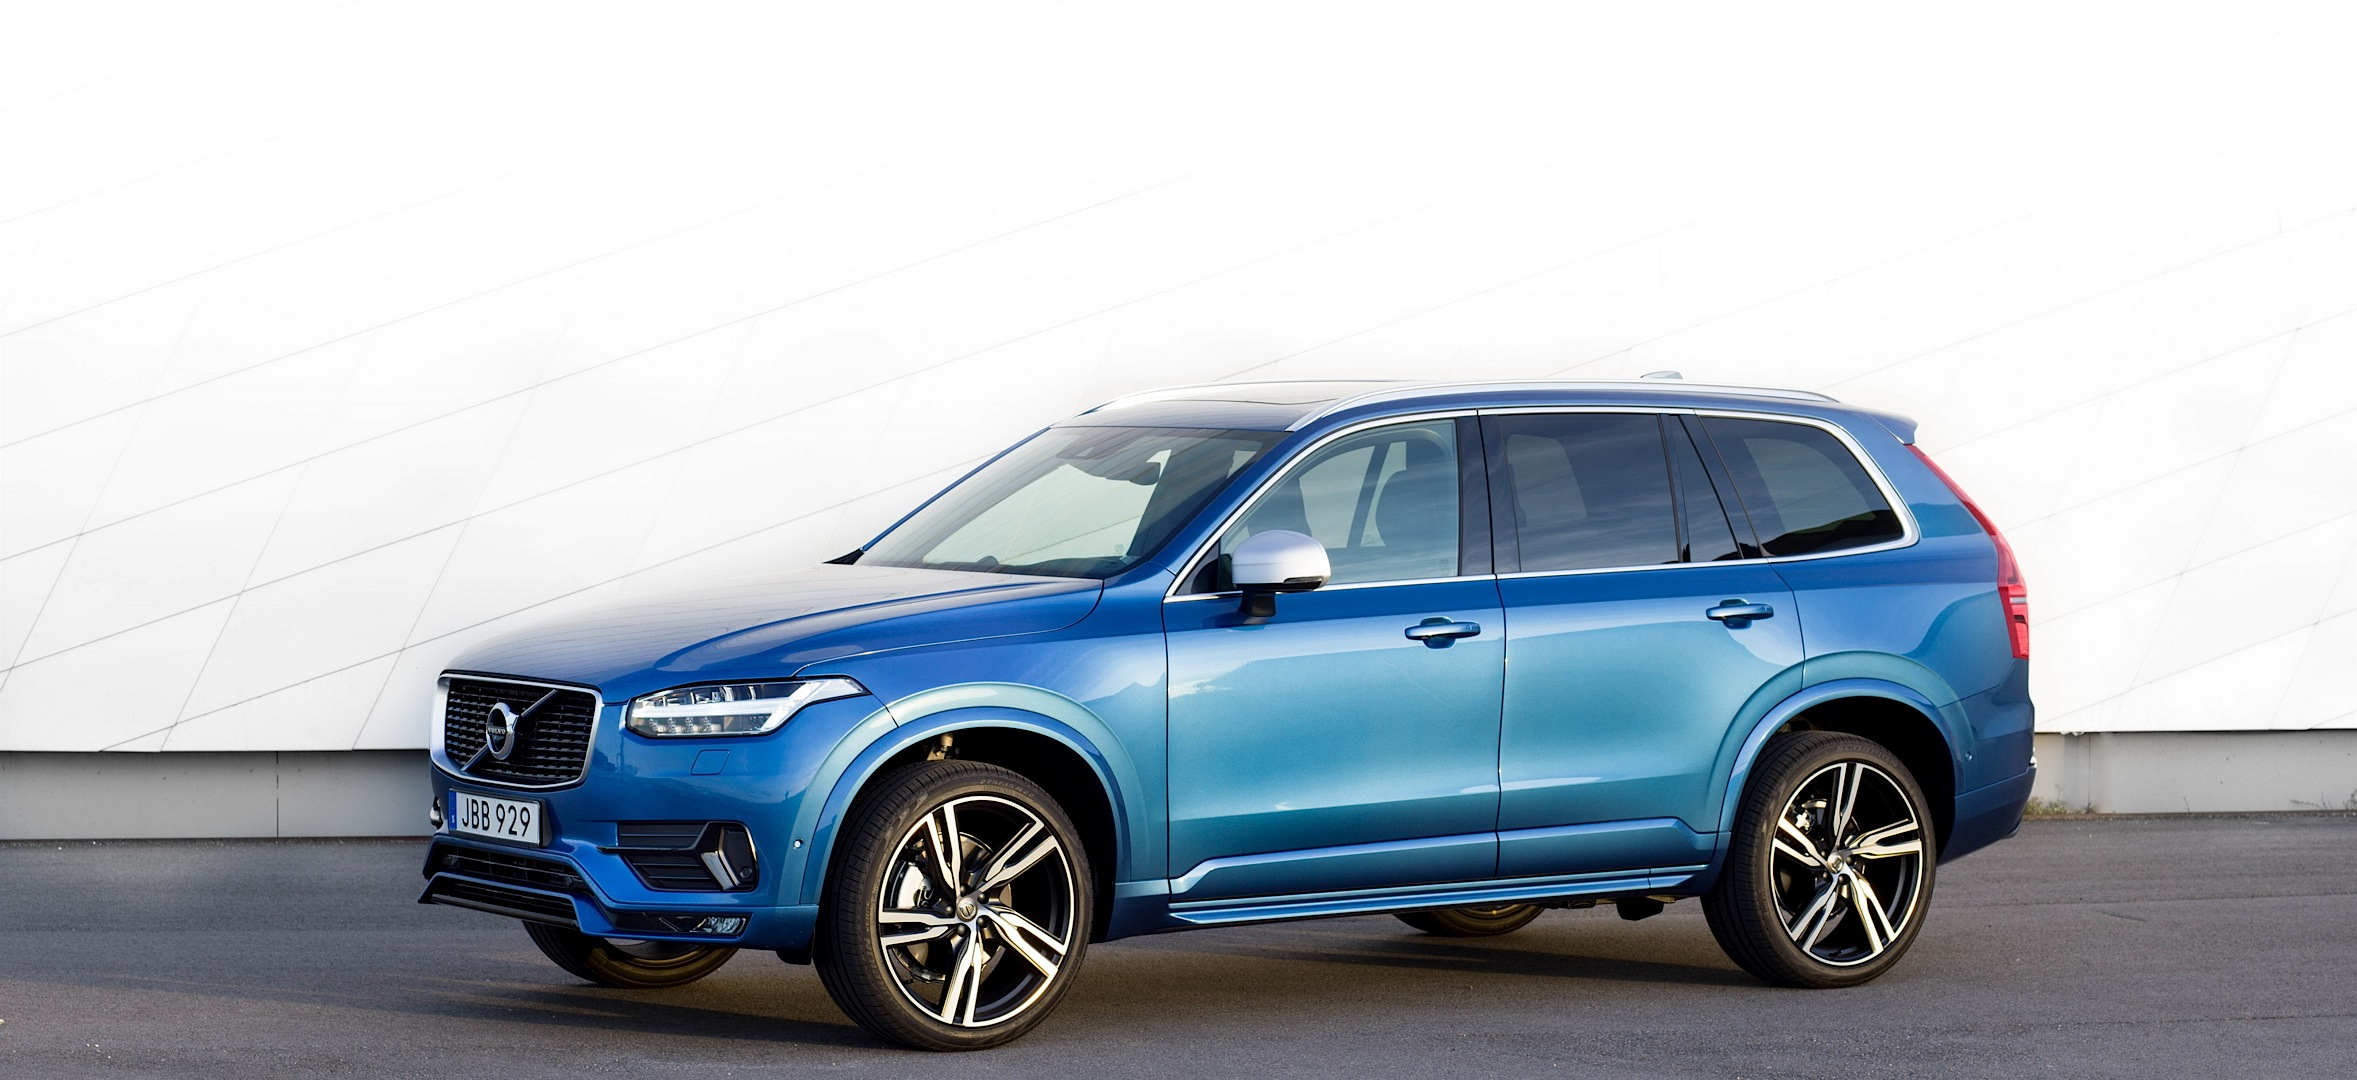 2016 volvo xc90 blue 200 interior and exterior images. Black Bedroom Furniture Sets. Home Design Ideas